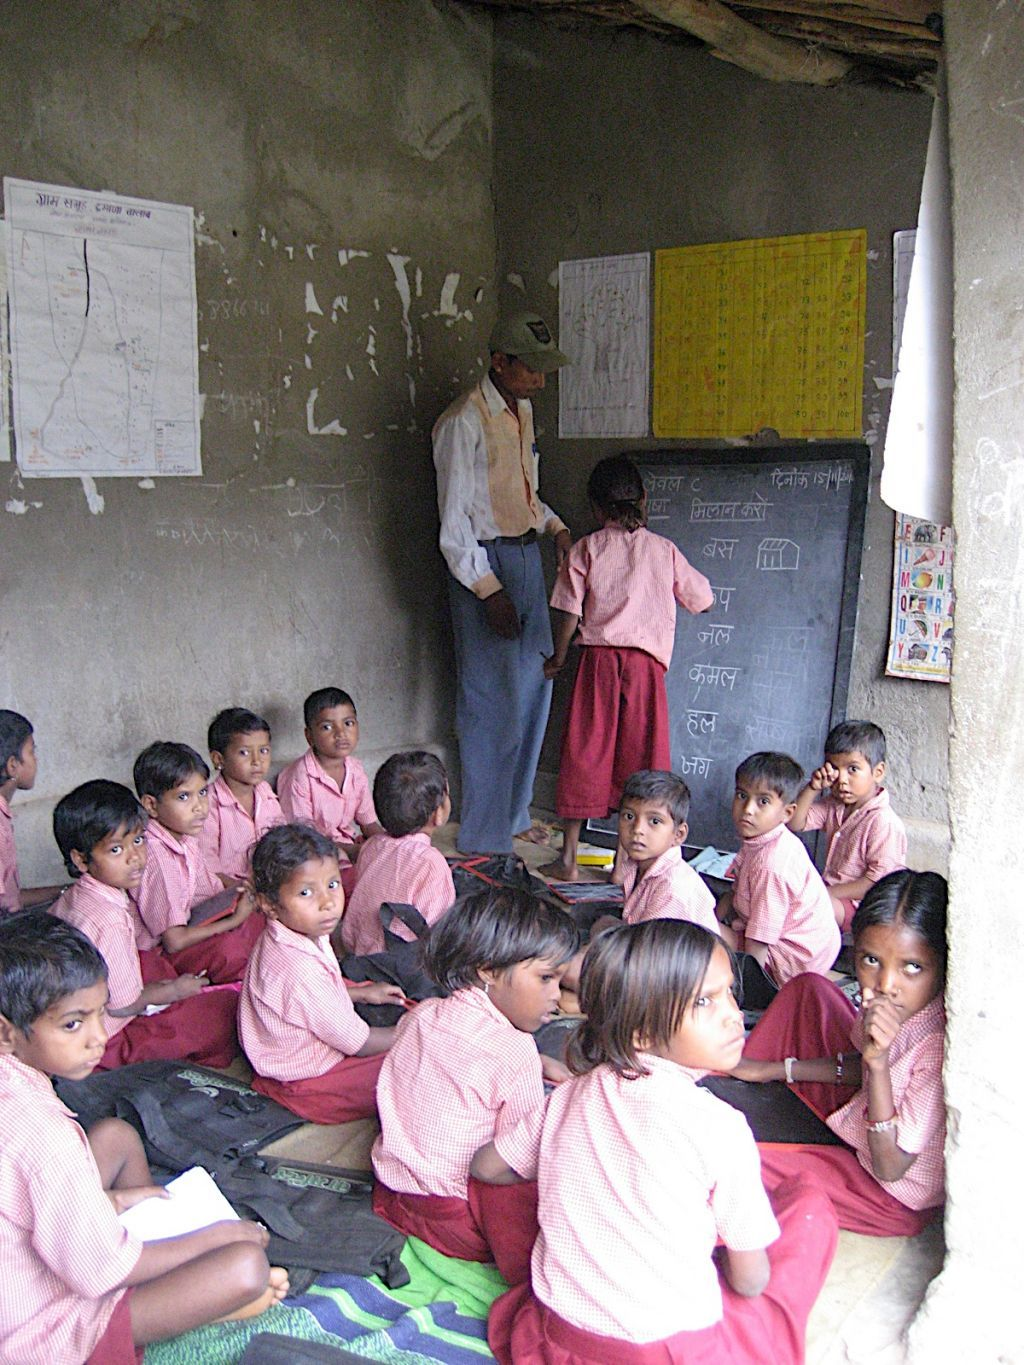 Study in India - Educations.com